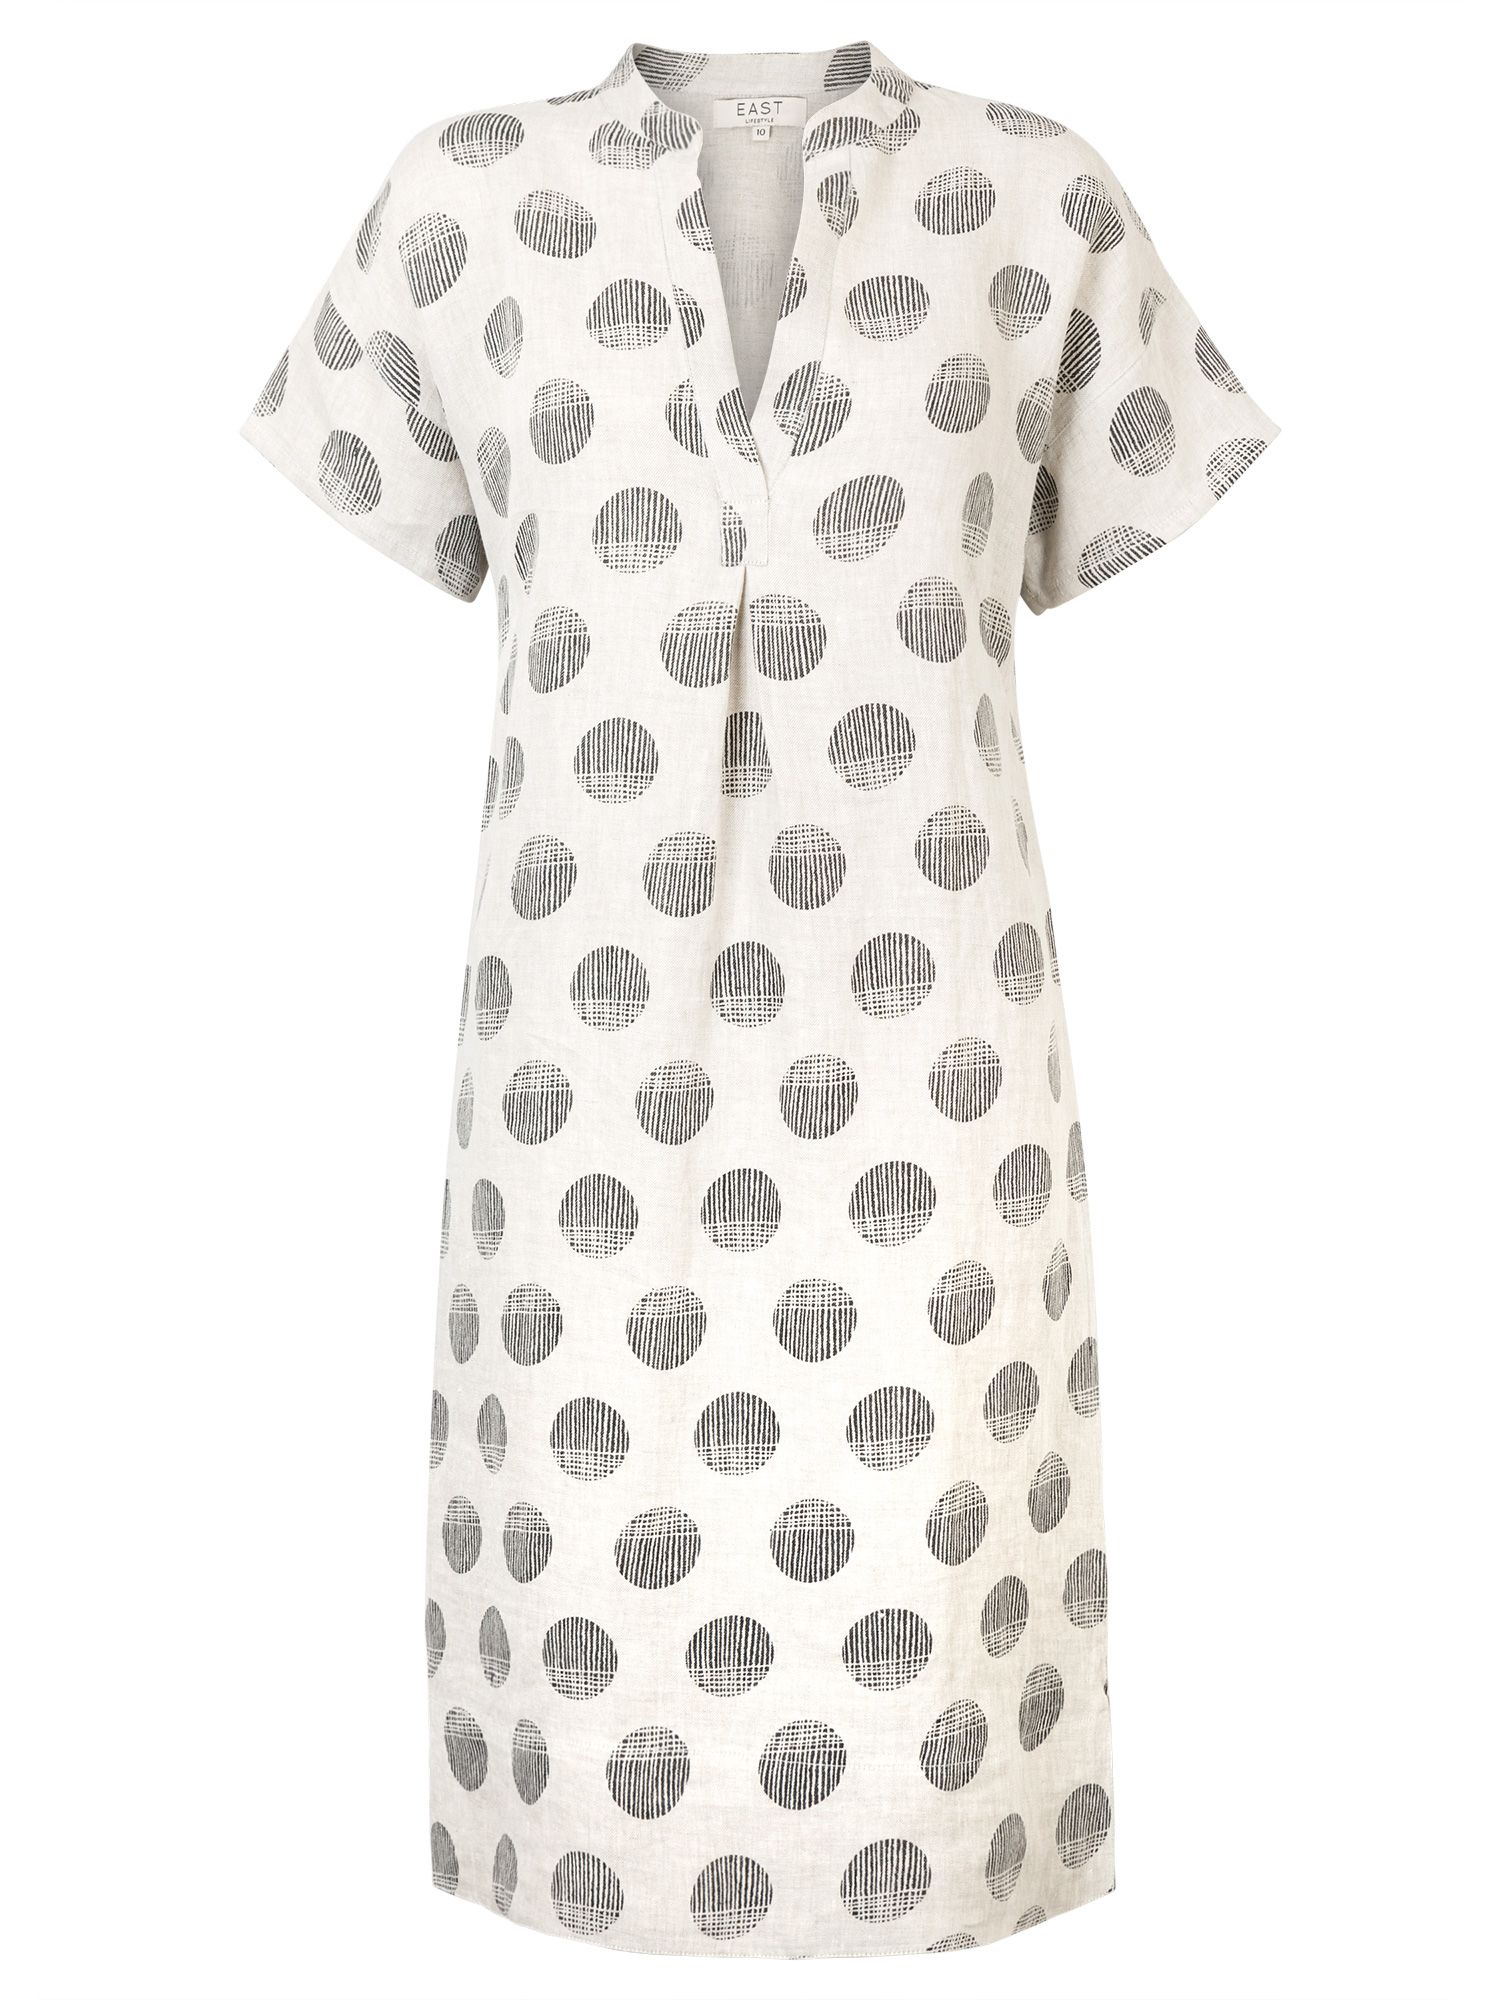 East Linen Organic Spot Dress, White